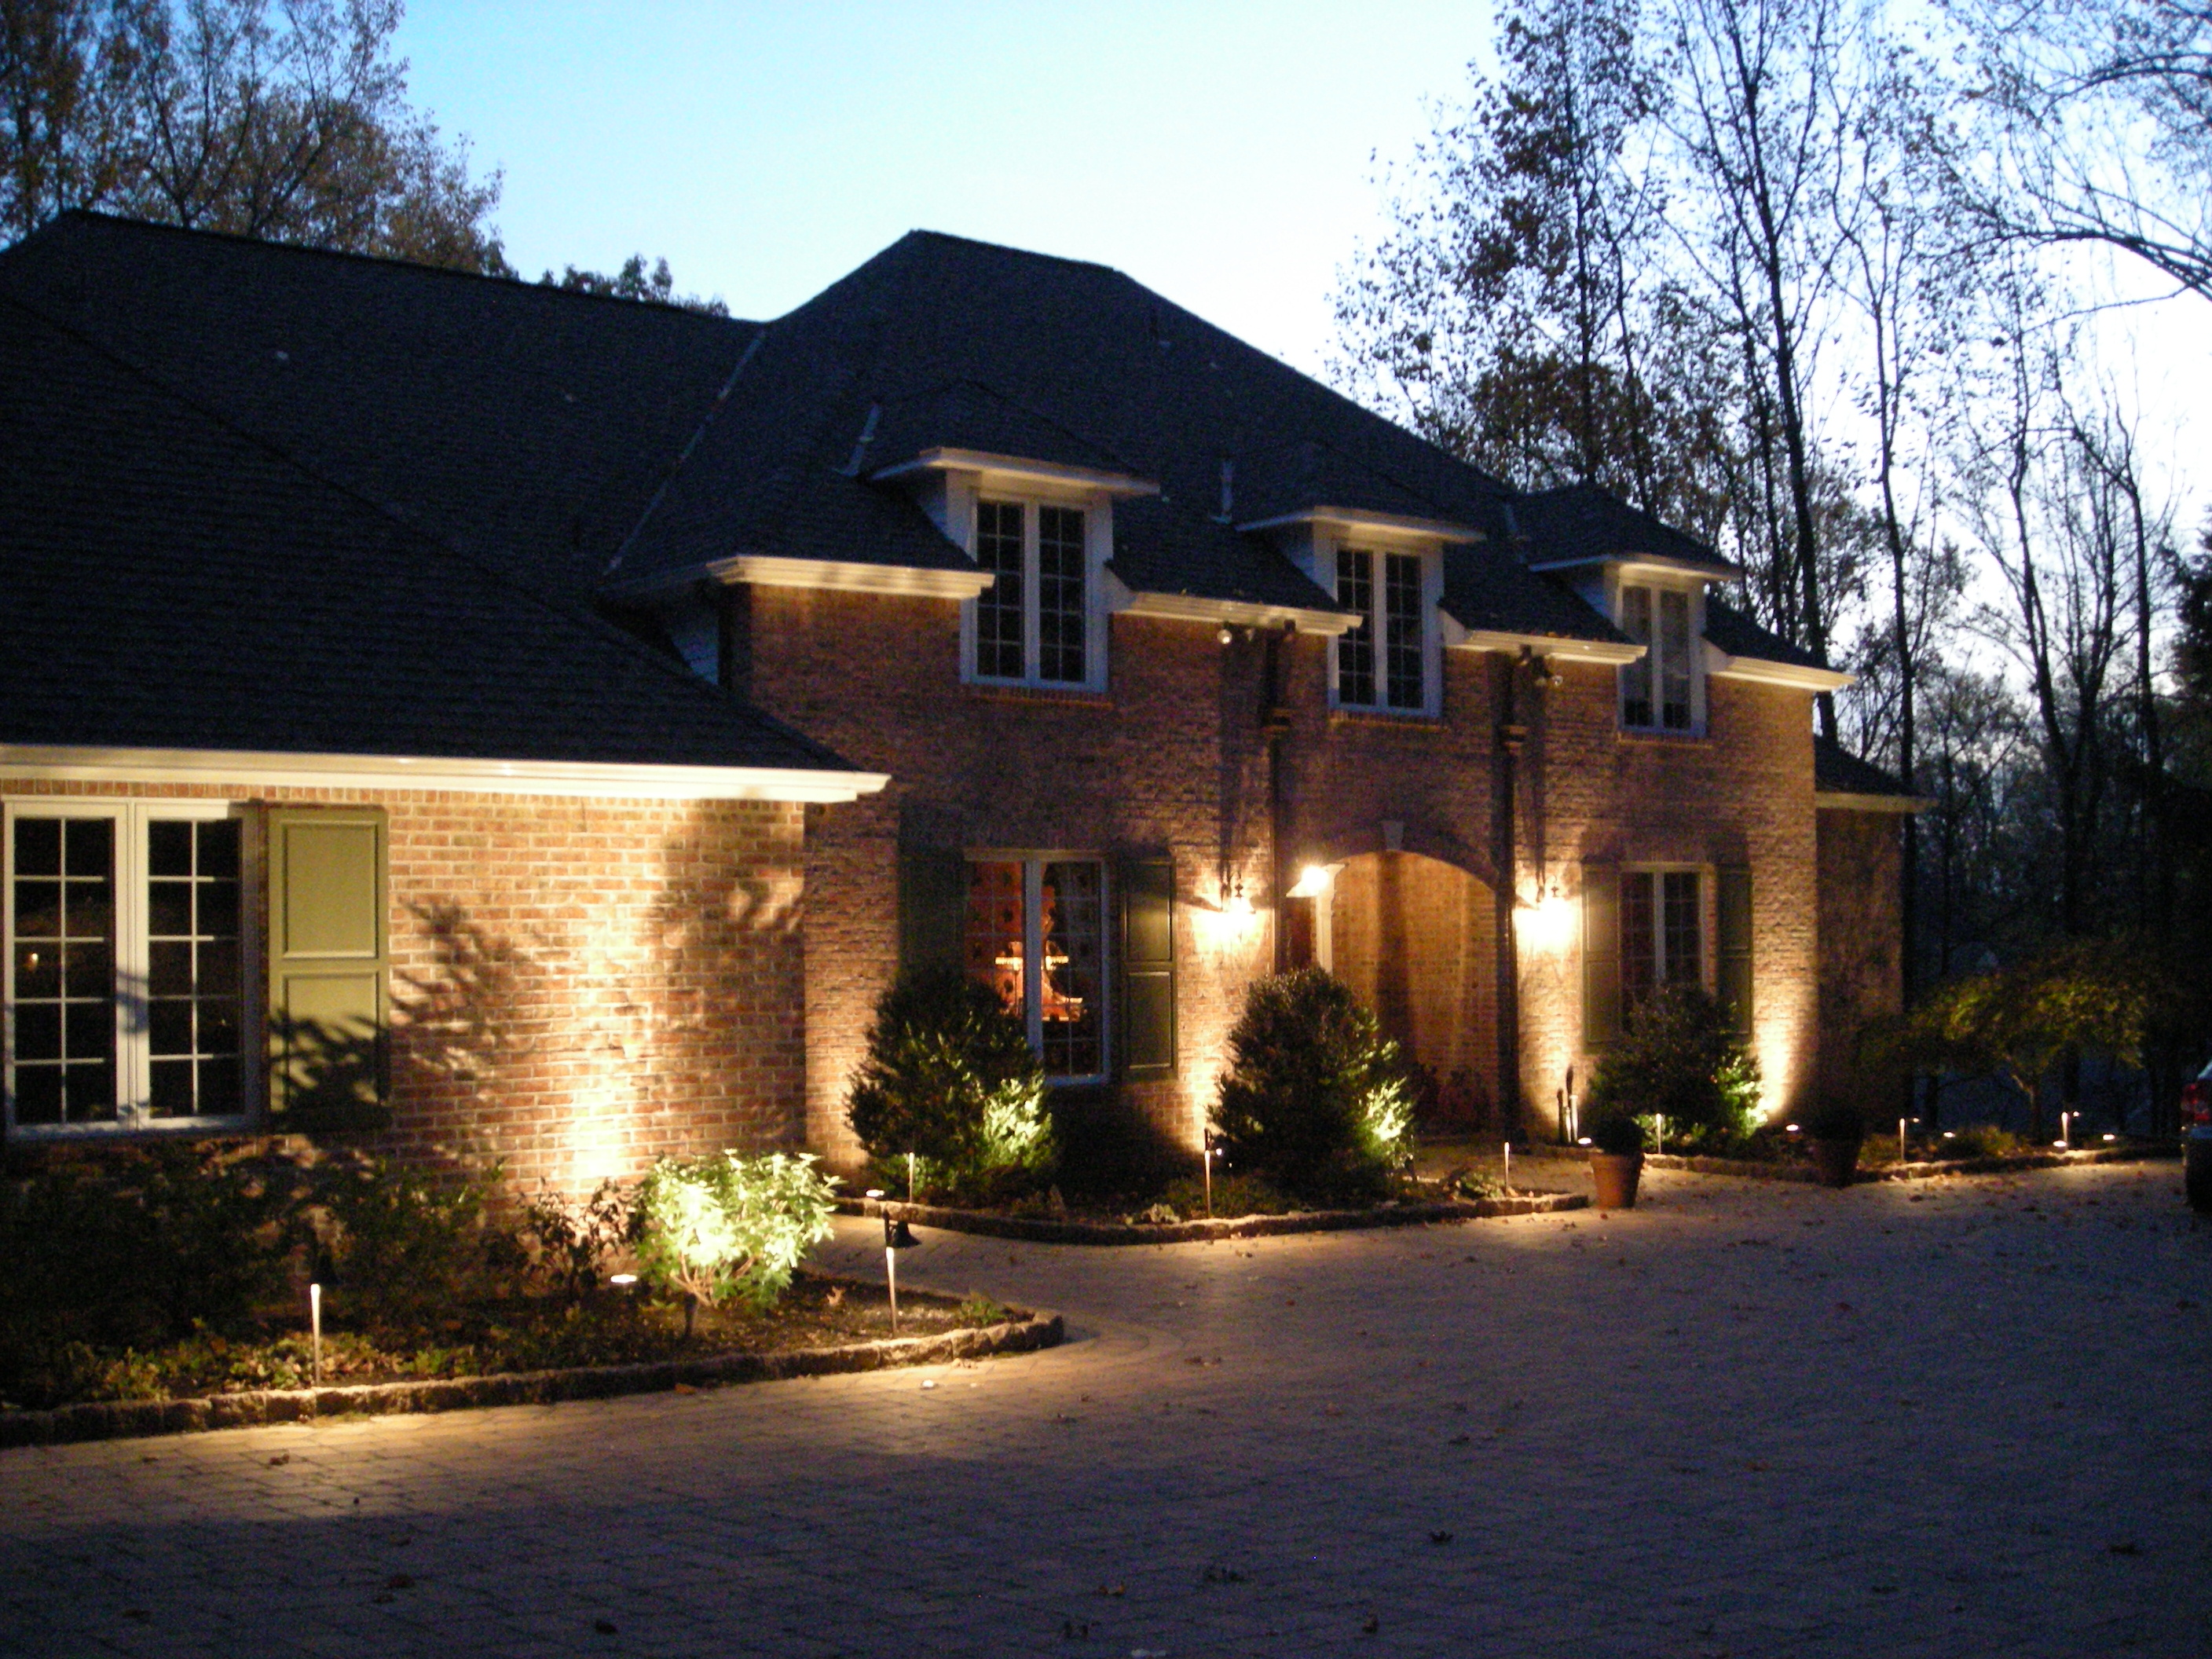 Bricked Exterior Wall White Painted Window Frame Perfect Exterior Lighting  Ideas Lighting Design For Front Entry